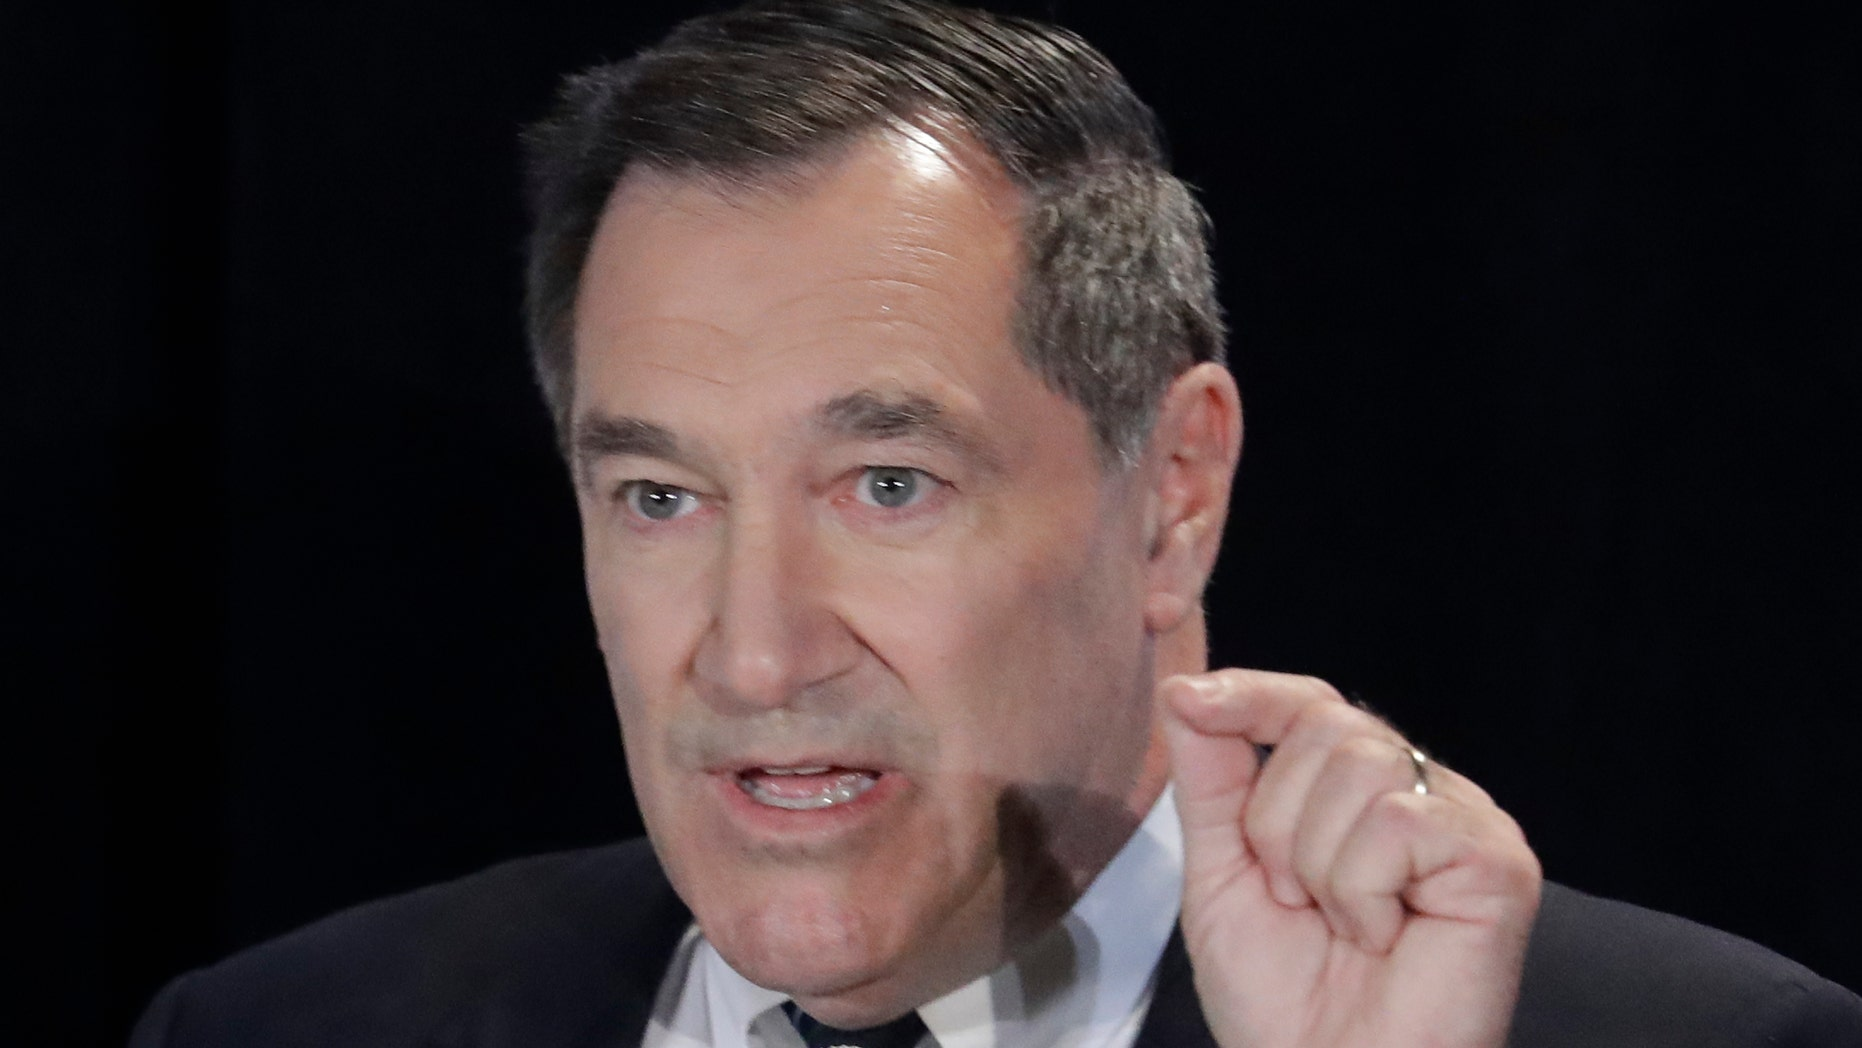 Democratic Sen. Joe Donnelly has often criticized his GOP opponent for importing products he sells from China. But it seems a Donnelly family-owned business does the same practice.